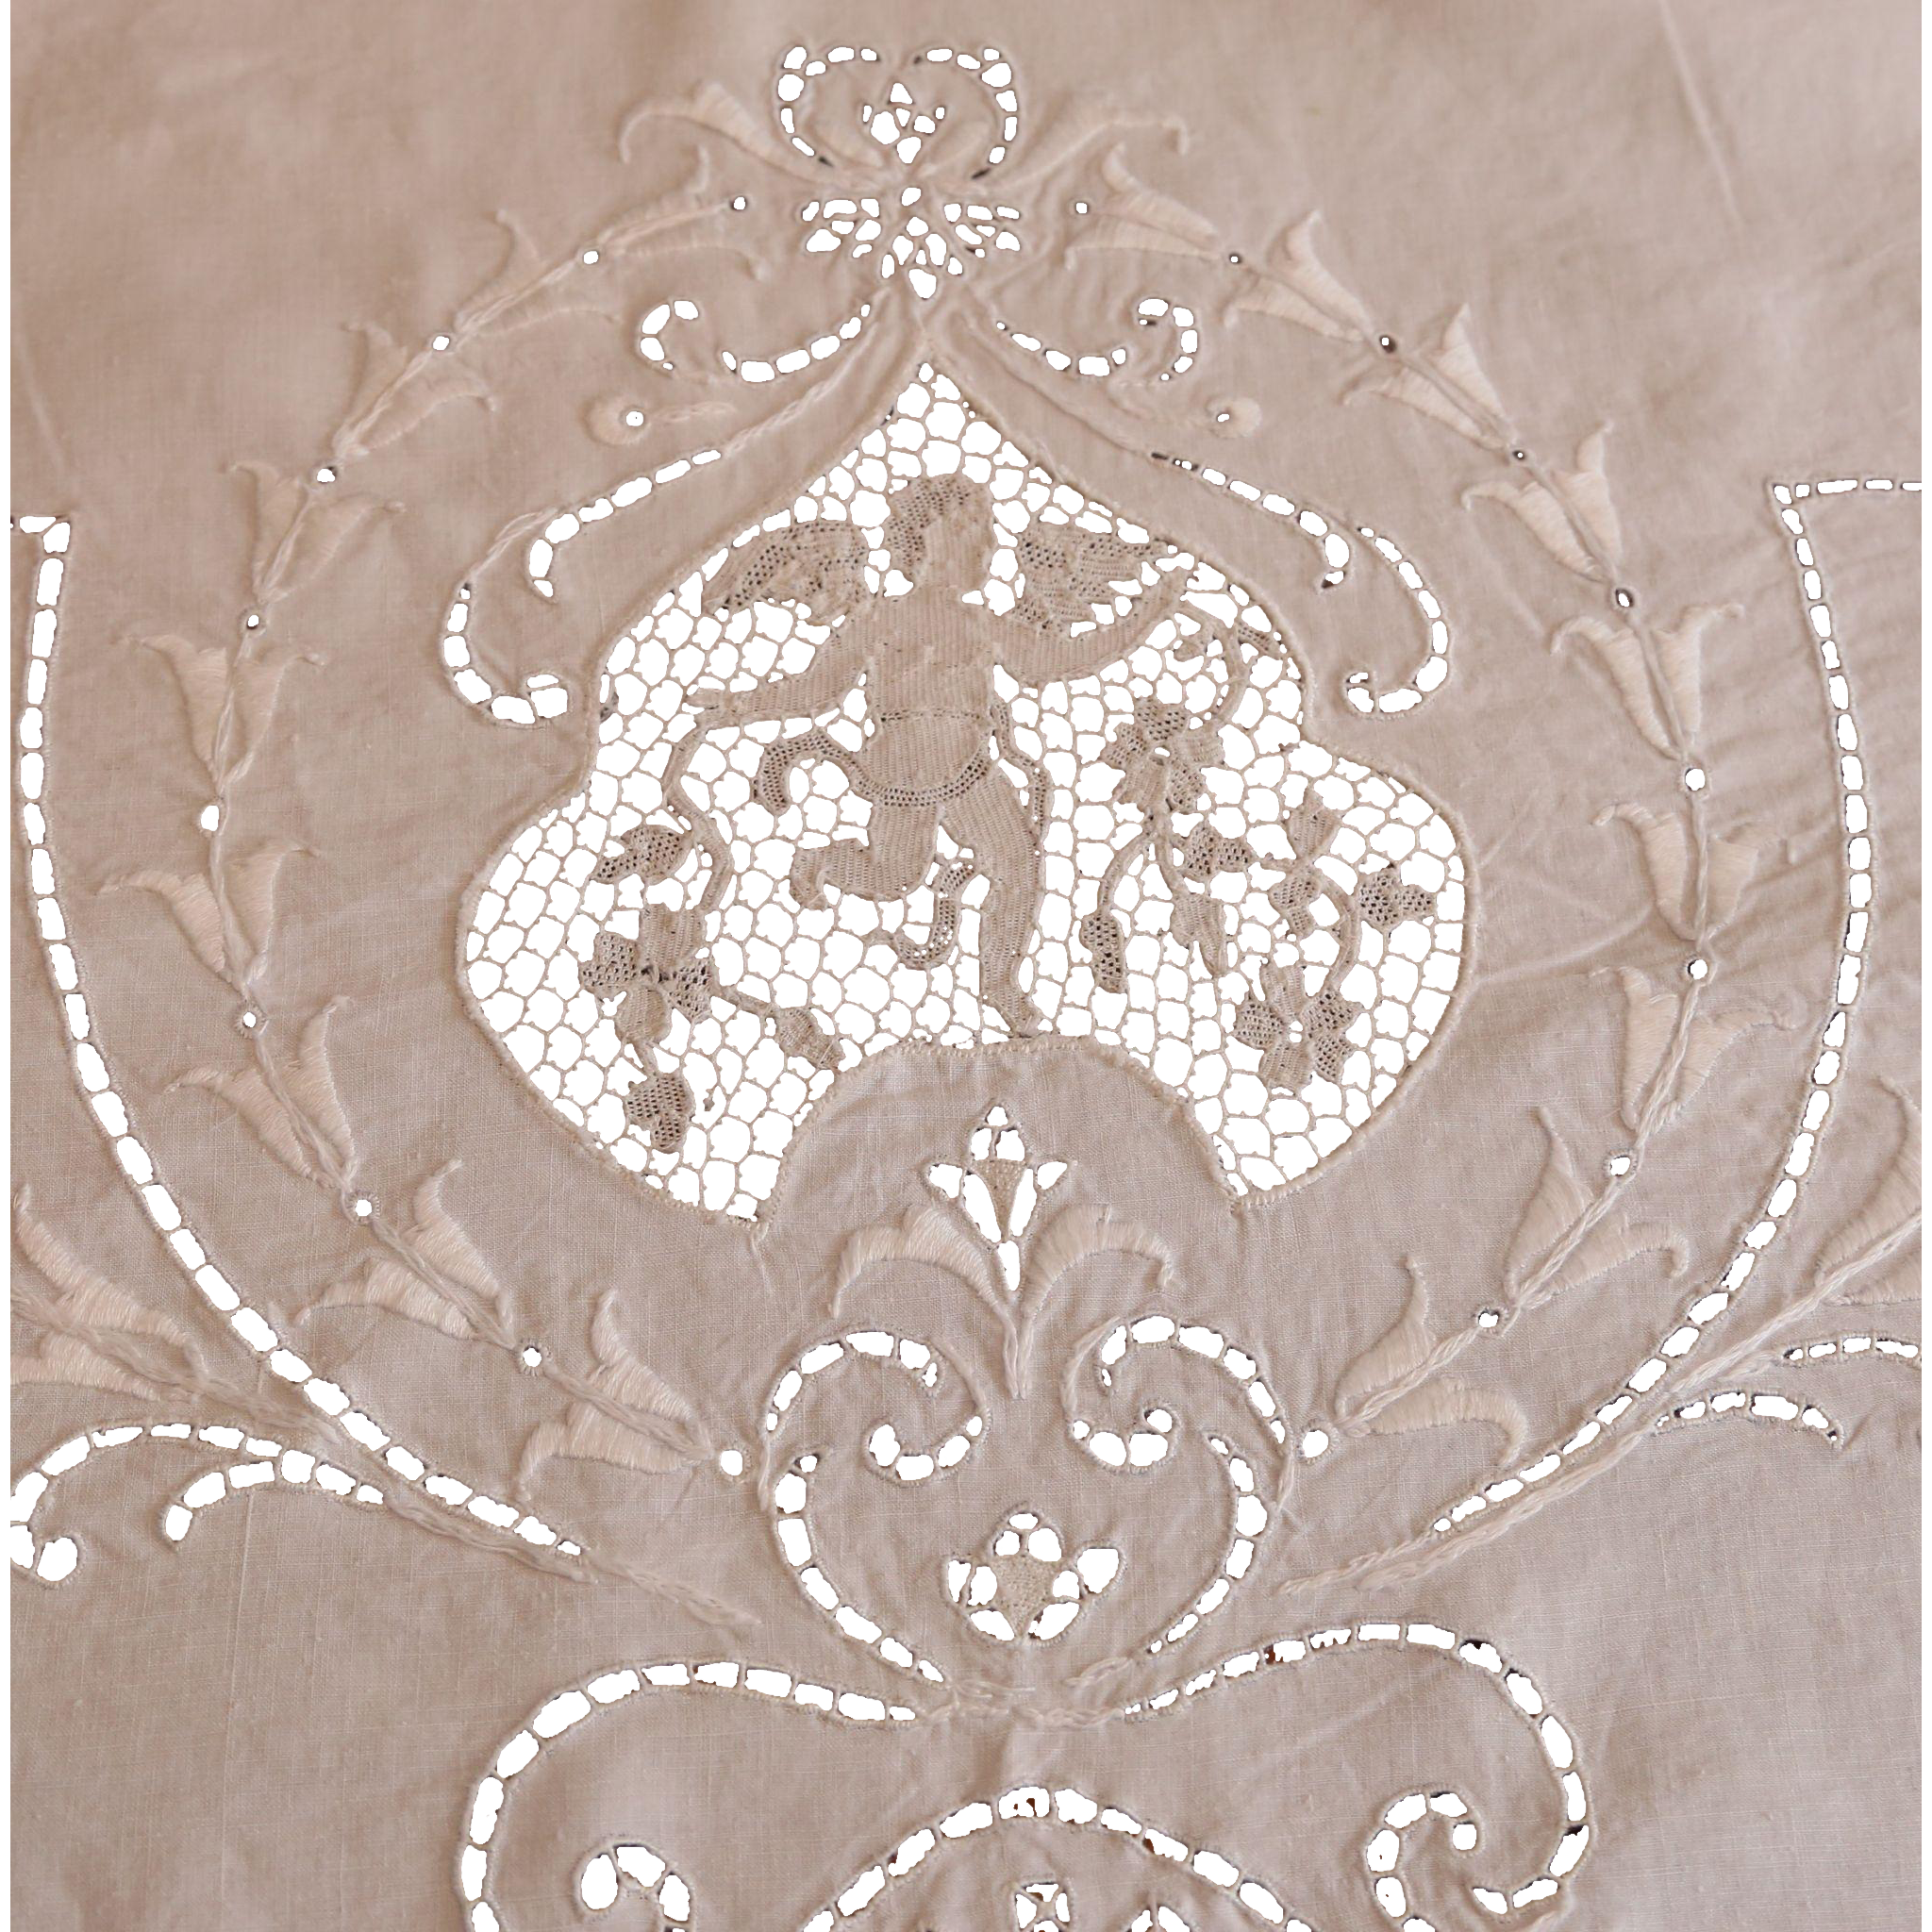 Vintage Needle Lace Embroidered Tablecloth With Angels,cherubs, Putti